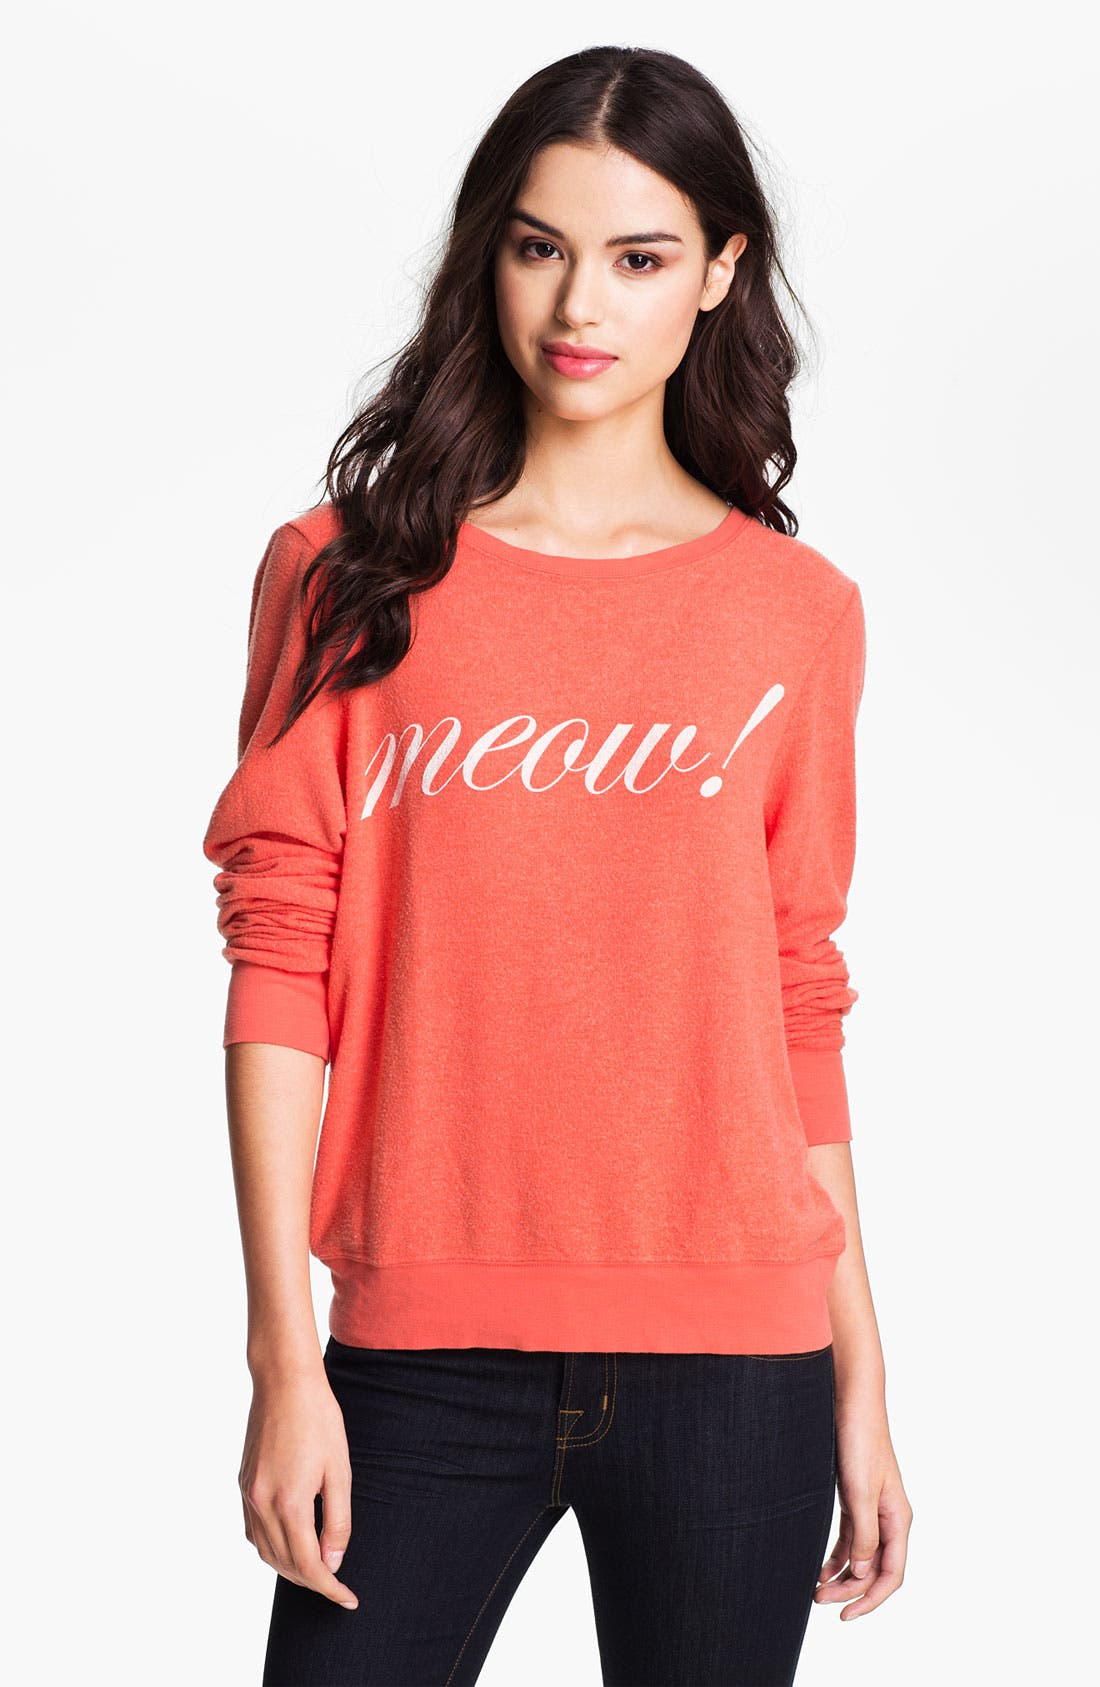 Alternate Image 1 Selected - Wildfox 'Meow!' Graphic Sweatshirt